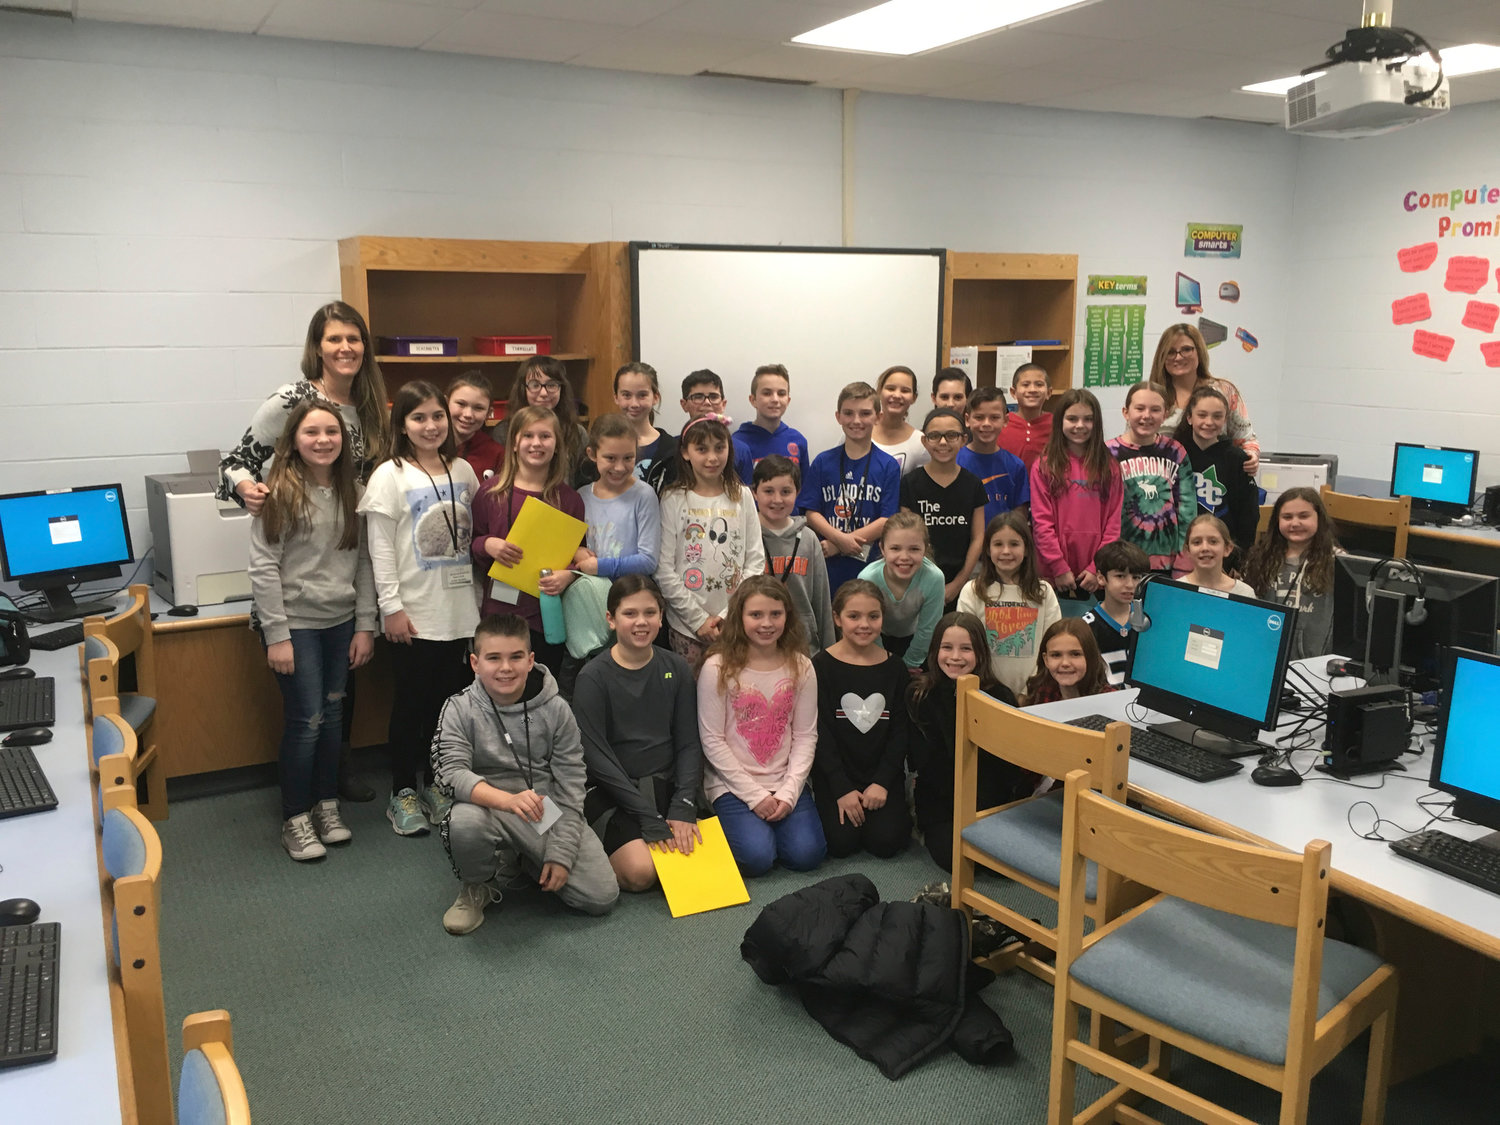 Forest Lake Elementary School students took time out from their recesses to participate in the school's newspaper club.